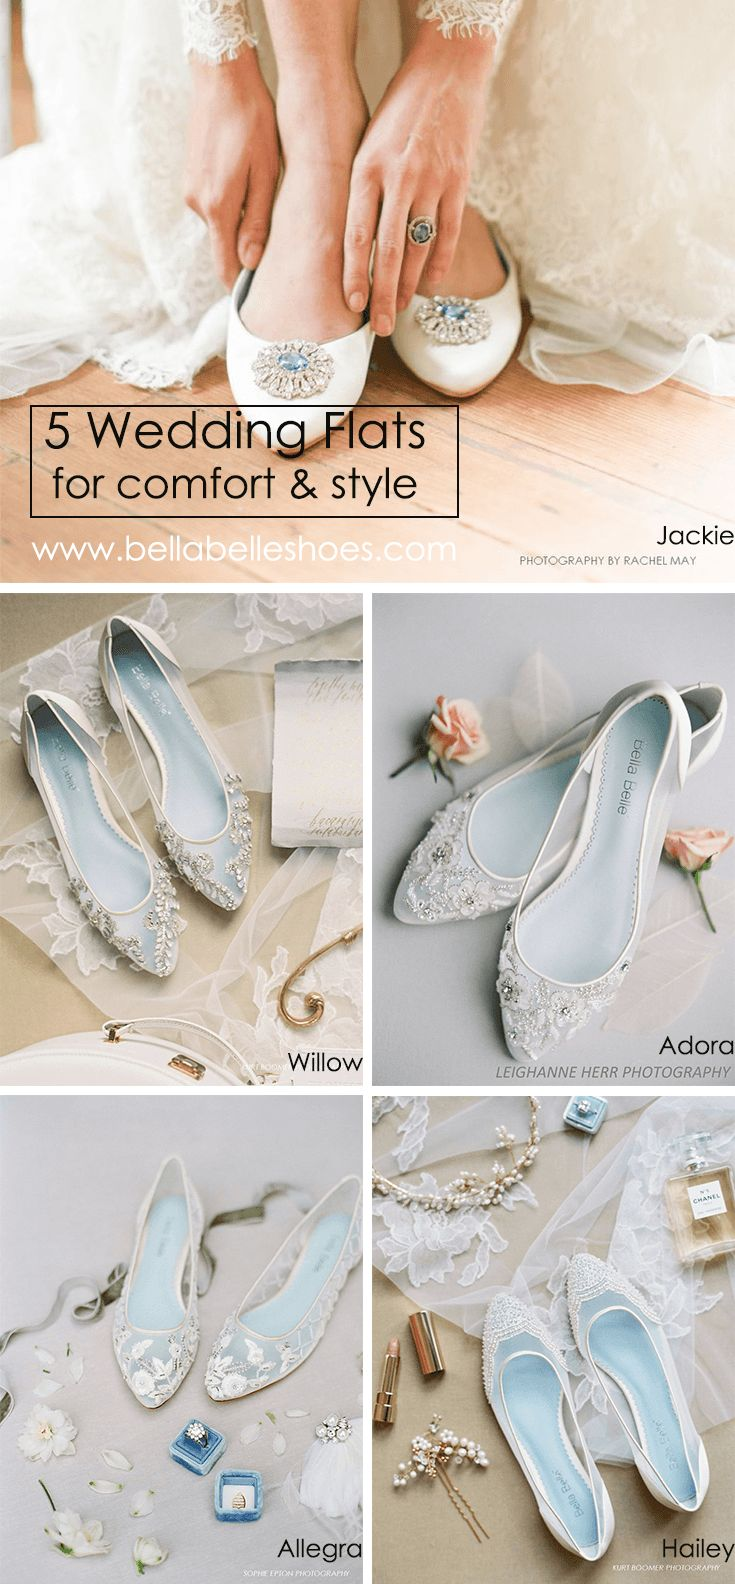 For brides who seek comfort without sacrificing style, Bella Belle Wedding Flats are demure with beaded crystals and jewels, floral patterns, lace and has something blue soles. With vintage, romantic, feminine, rustic, glamorous and classic styles, find your perfect wedding shoe in any style for the big day.  Photography by Rachel May, Kurt Boomer, Leighanne Herr and Sophie Epton.